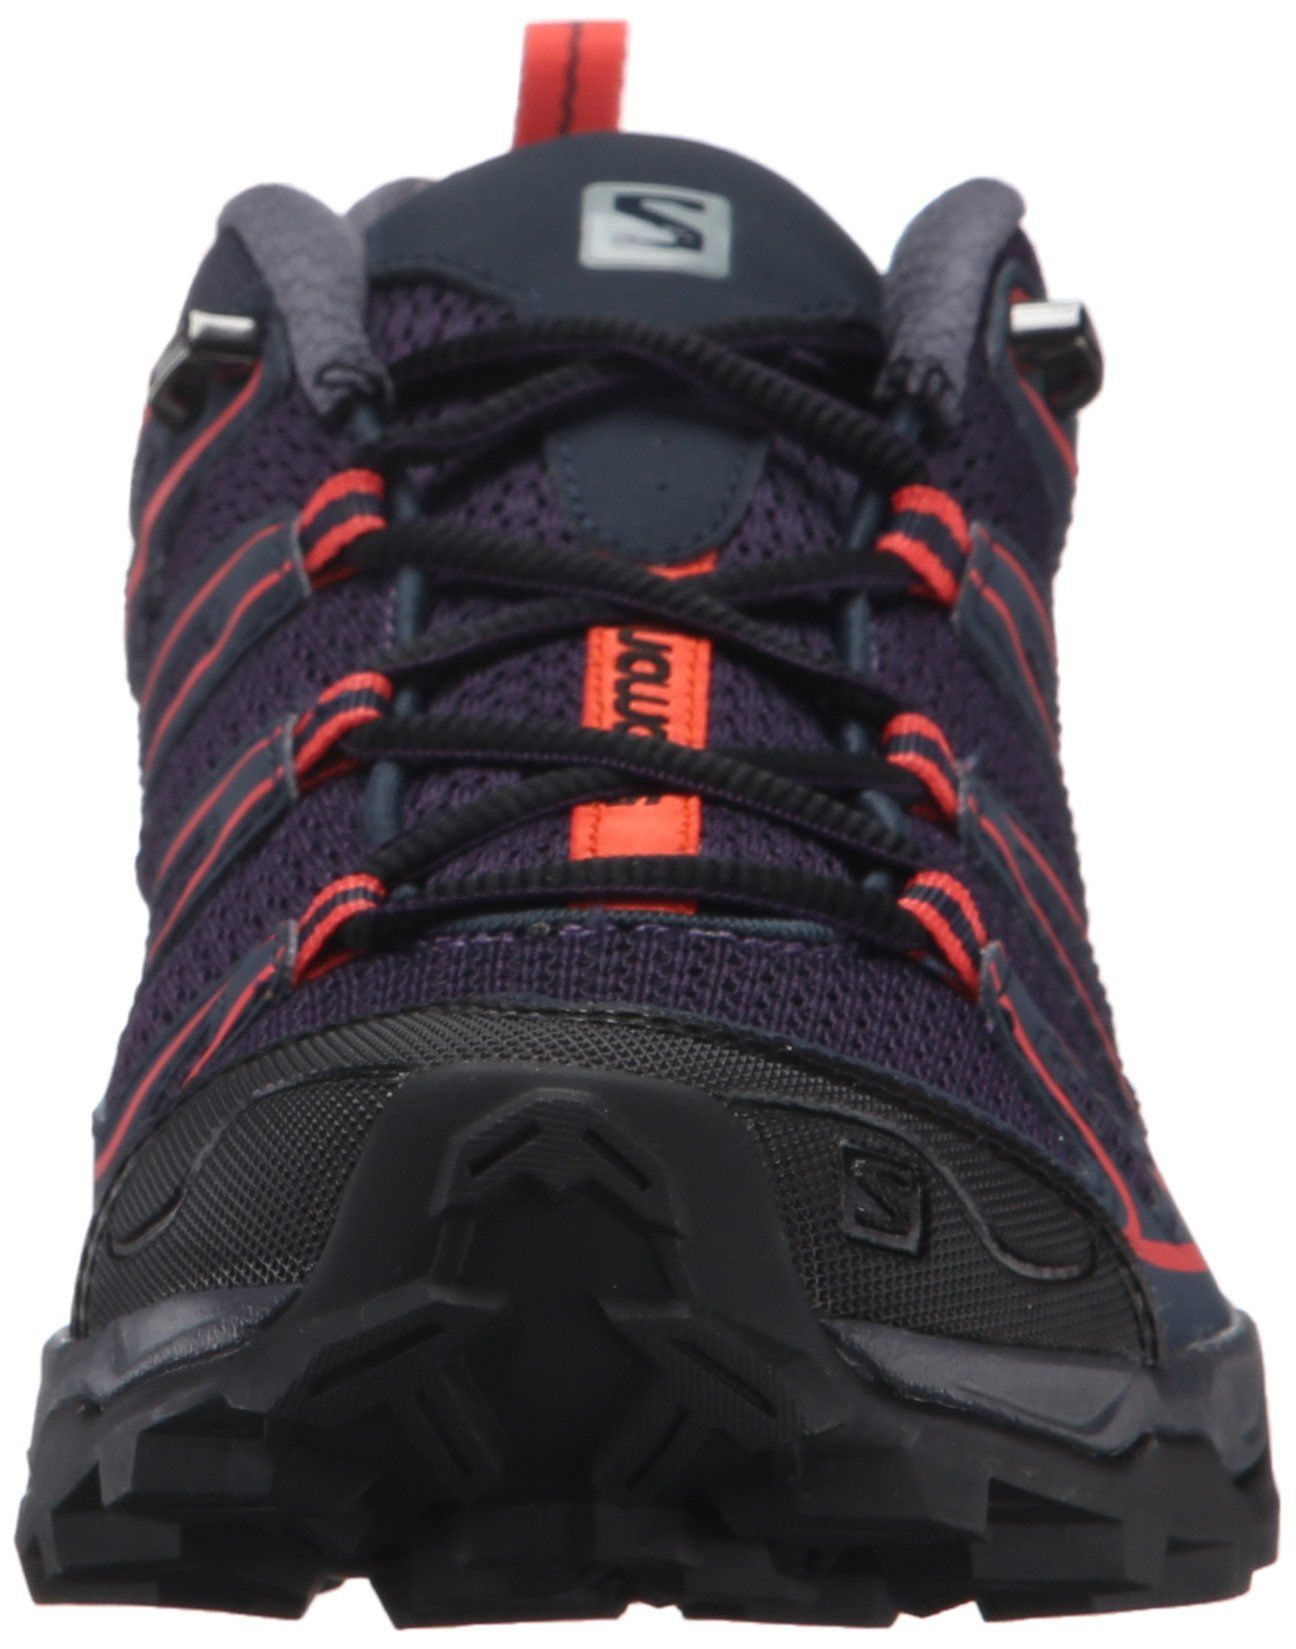 57f5a2e2a0df Salomon Womens X Ultra Prime W Hiking Shoe Nightshade Grey Deep Blue Coral  Punch